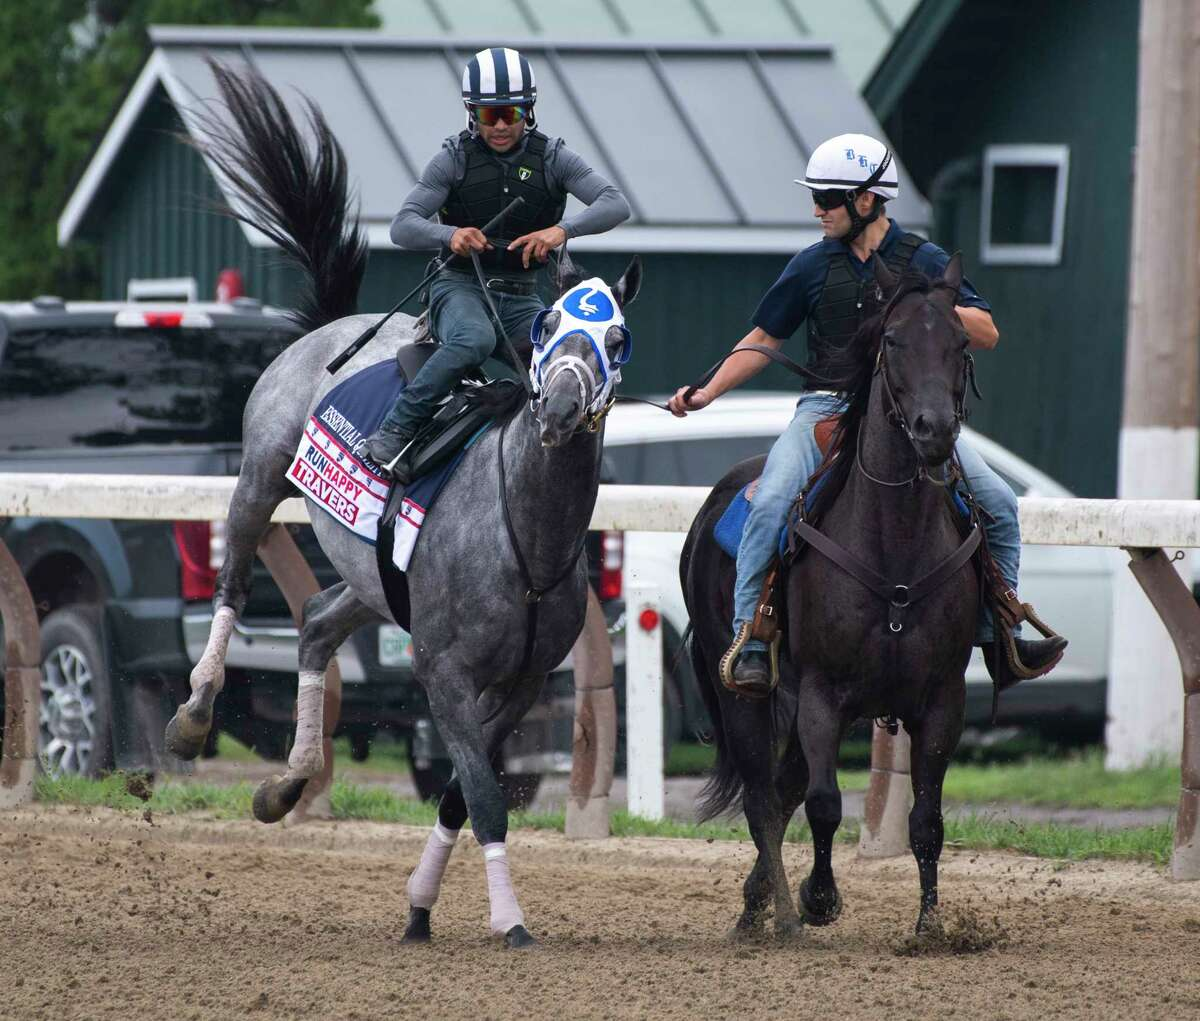 Essential Quality with jockey Luis Saez kicks up his heals Saturday Aug 21, 2021on the way to his final speed work before his appearance in the Travers Stakes net week at the Saratoga Race Course in Saratoga Springs, N.Y. Photo Special to the Times Union by Skip Dickstein